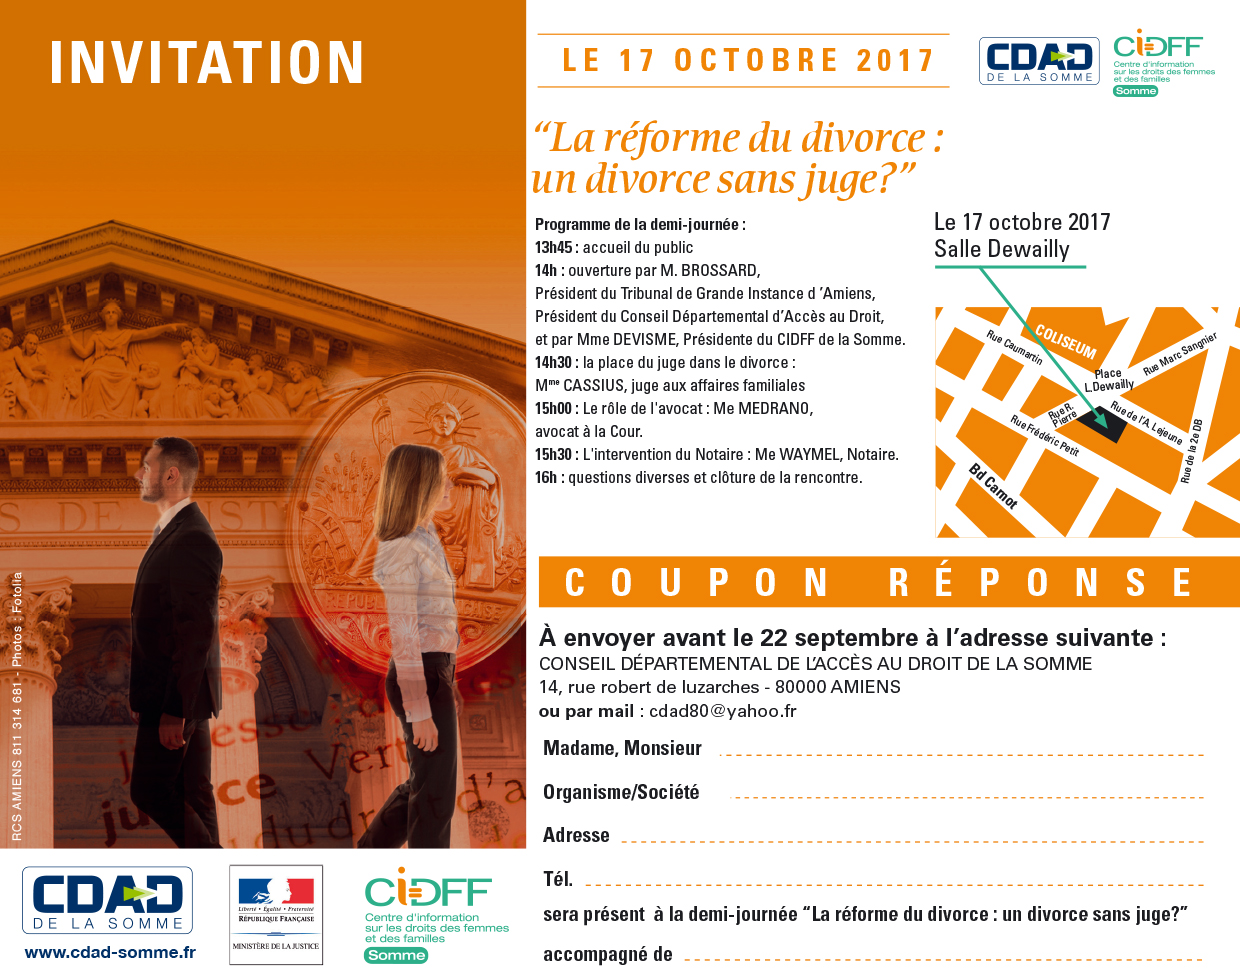 Cdad colloque 2017